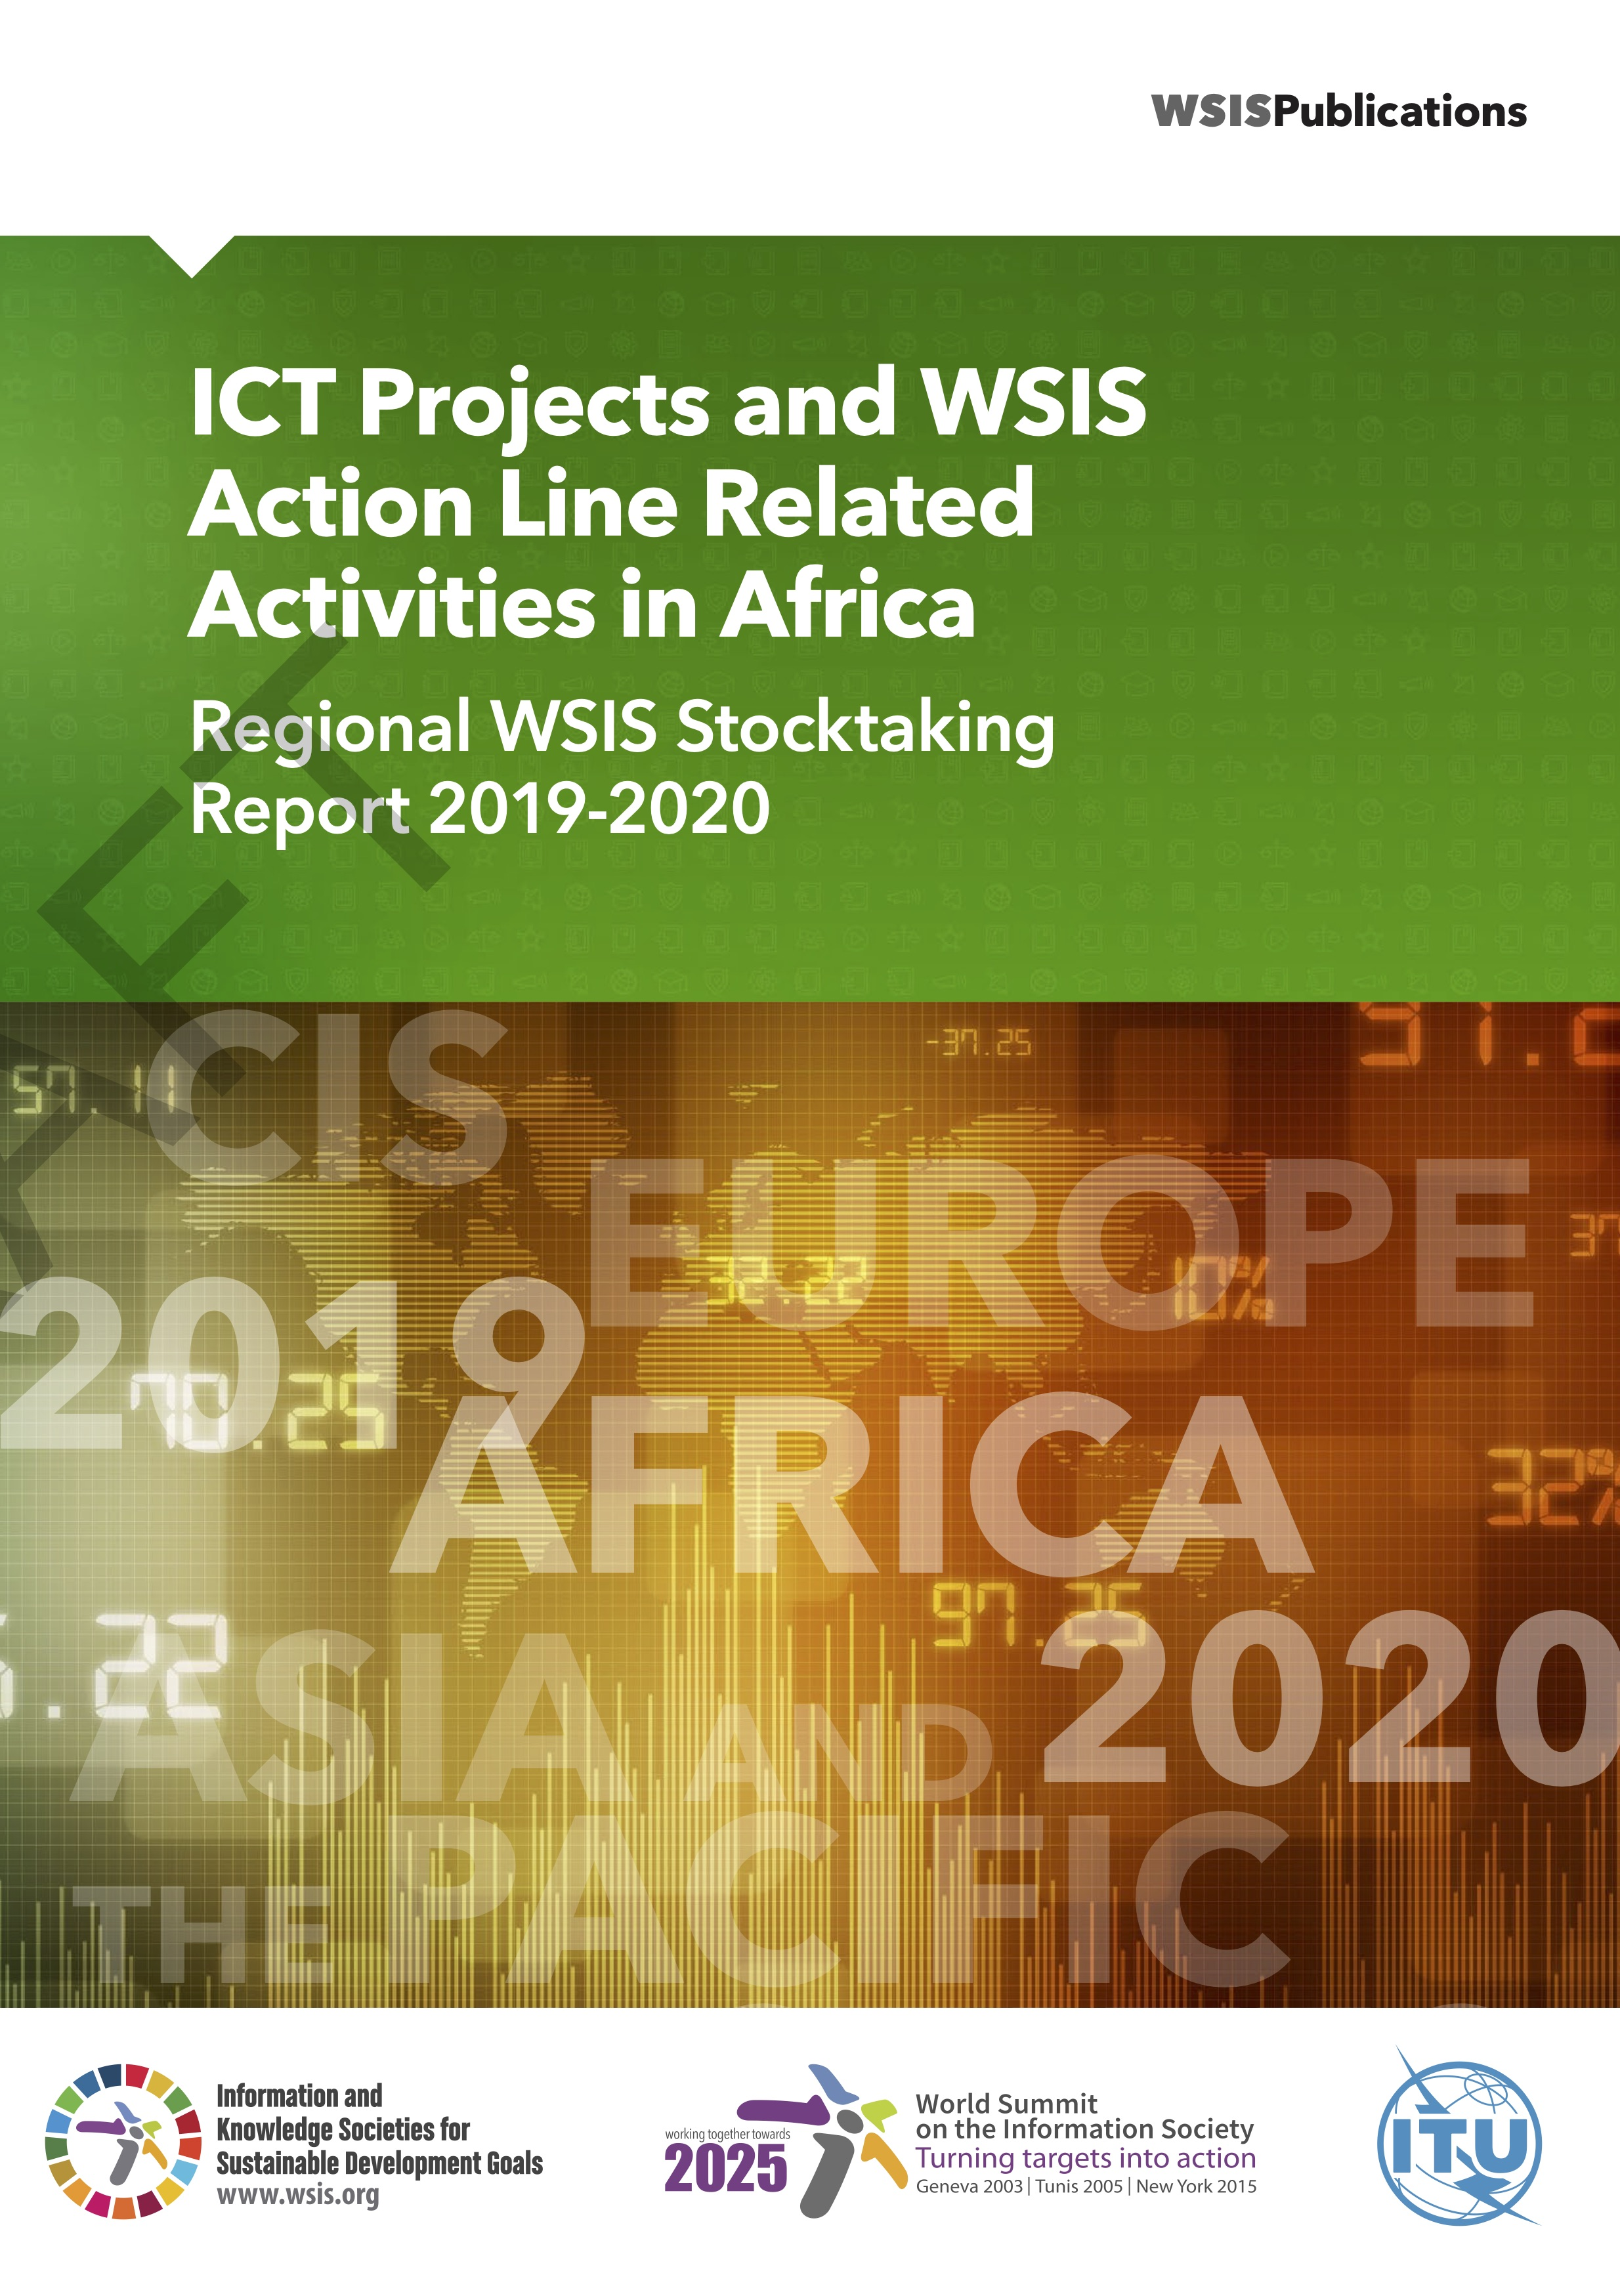 Regional WSIS Stocktaking Report 2019-2020 — Africa